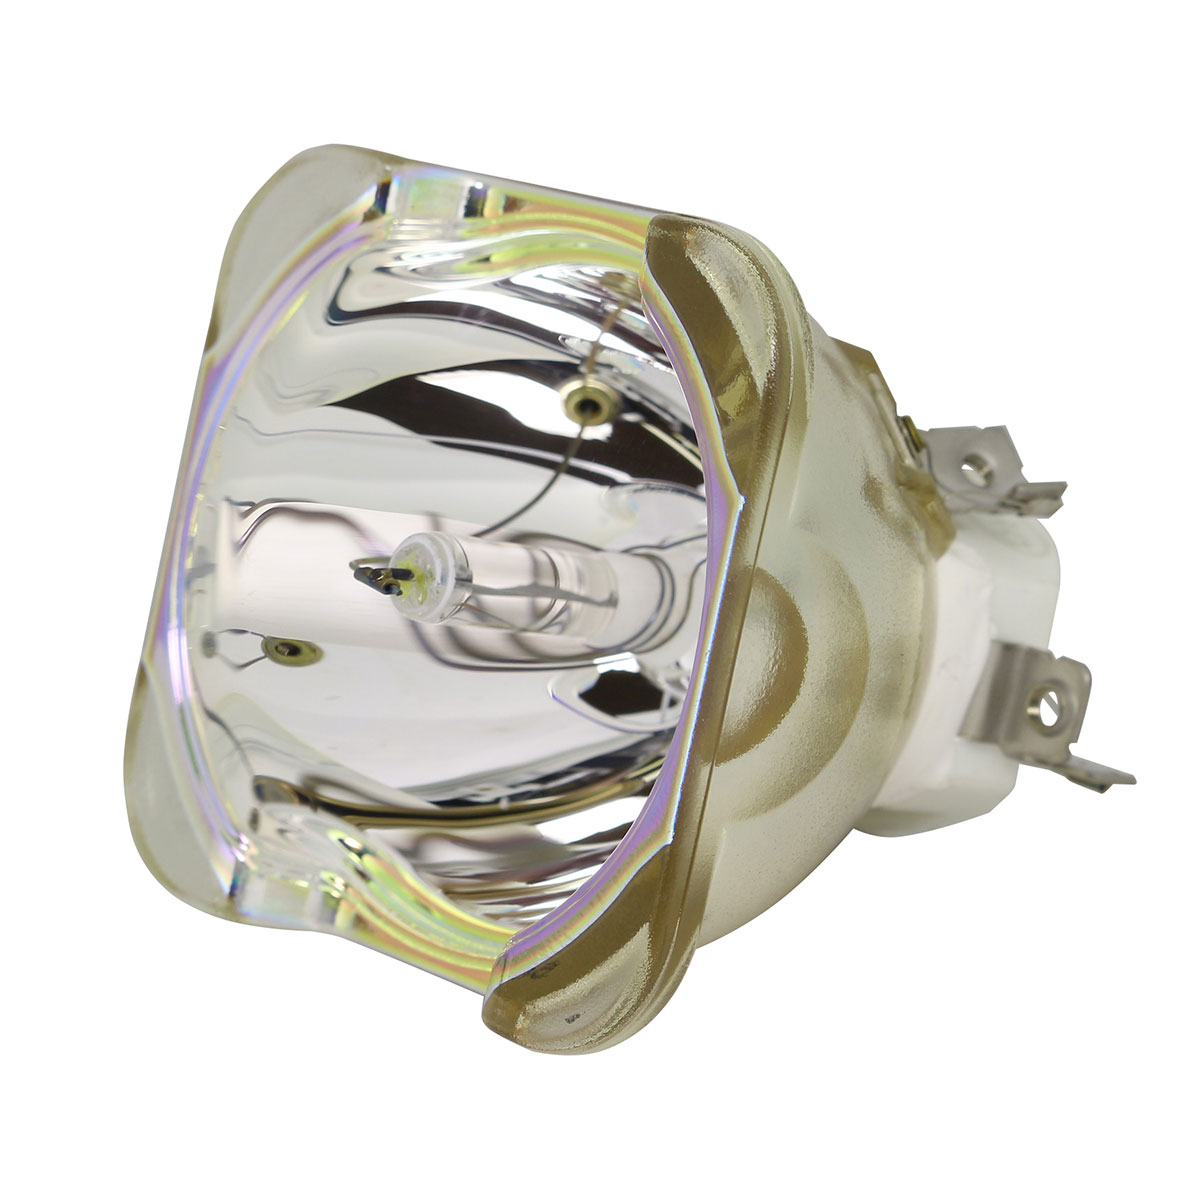 Lutema Economy Bulb for Sanyo DXL2000 Projector (Lamp with Housing) - image 5 de 5